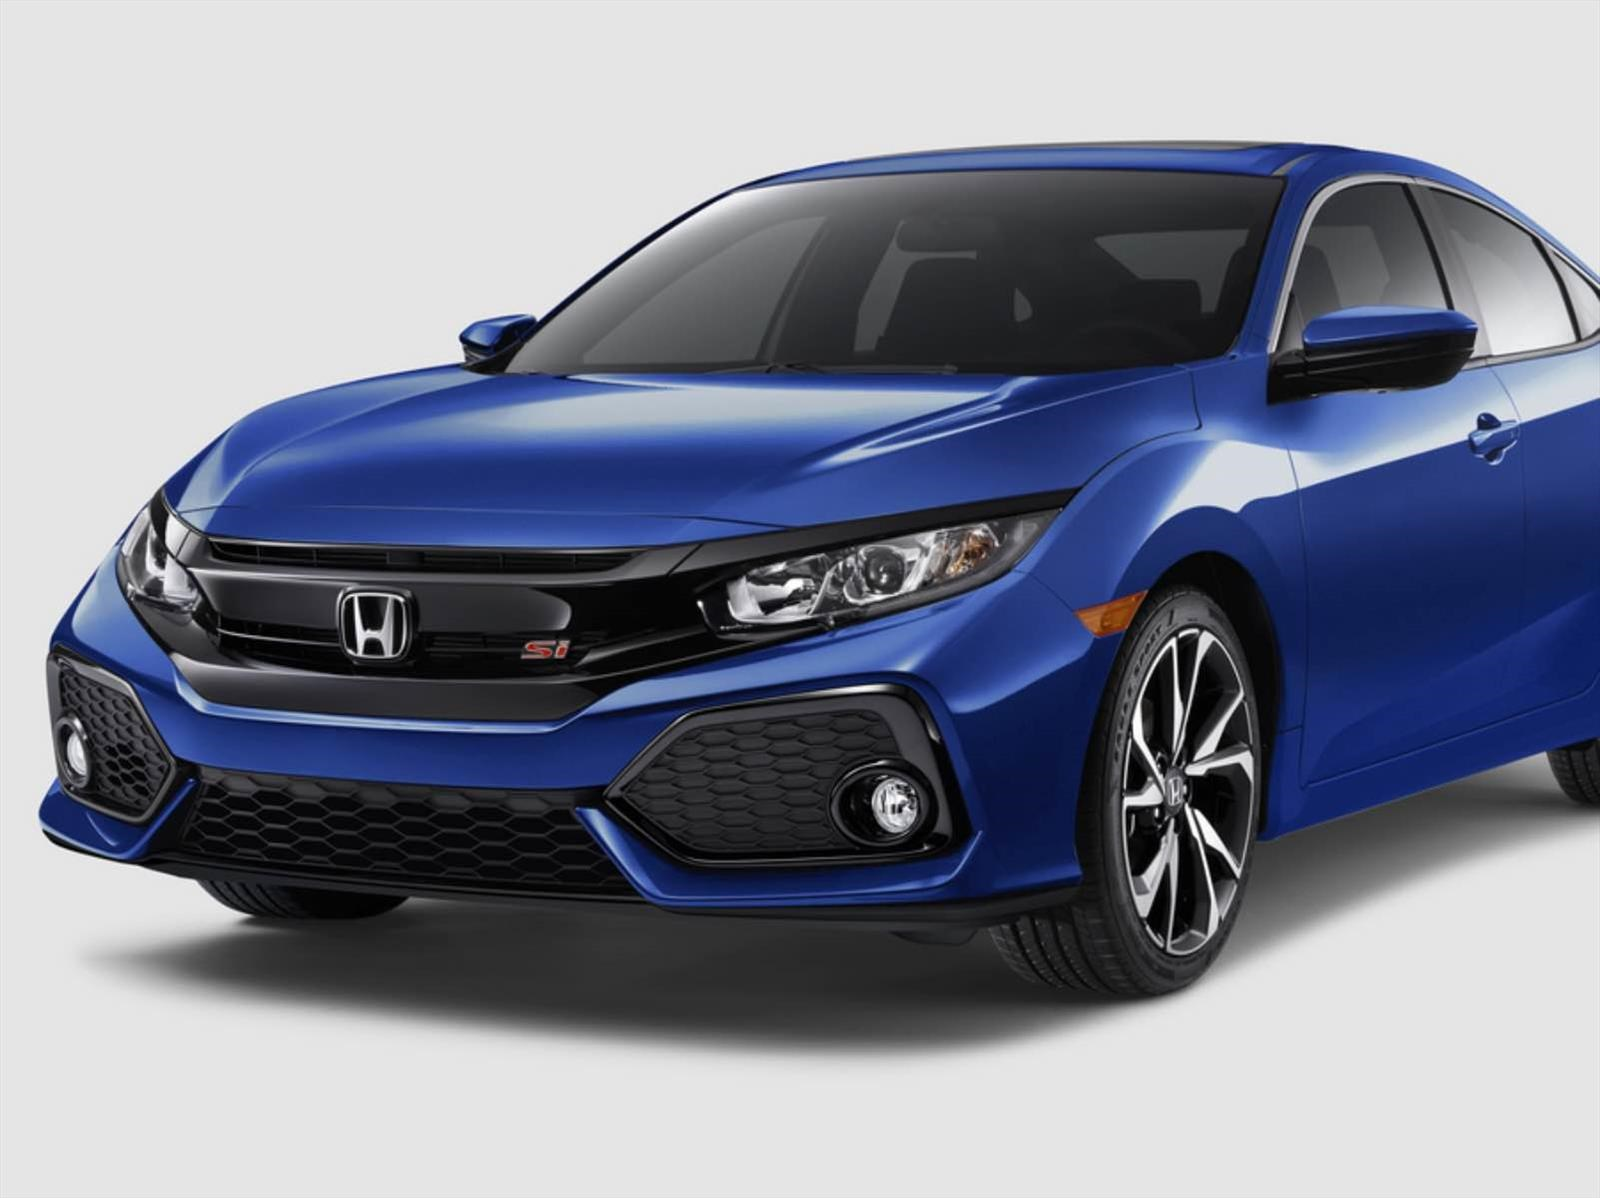 auto show de nueva york 2017 honda civic si 2018 el primero con motor turbocargado noticias. Black Bedroom Furniture Sets. Home Design Ideas